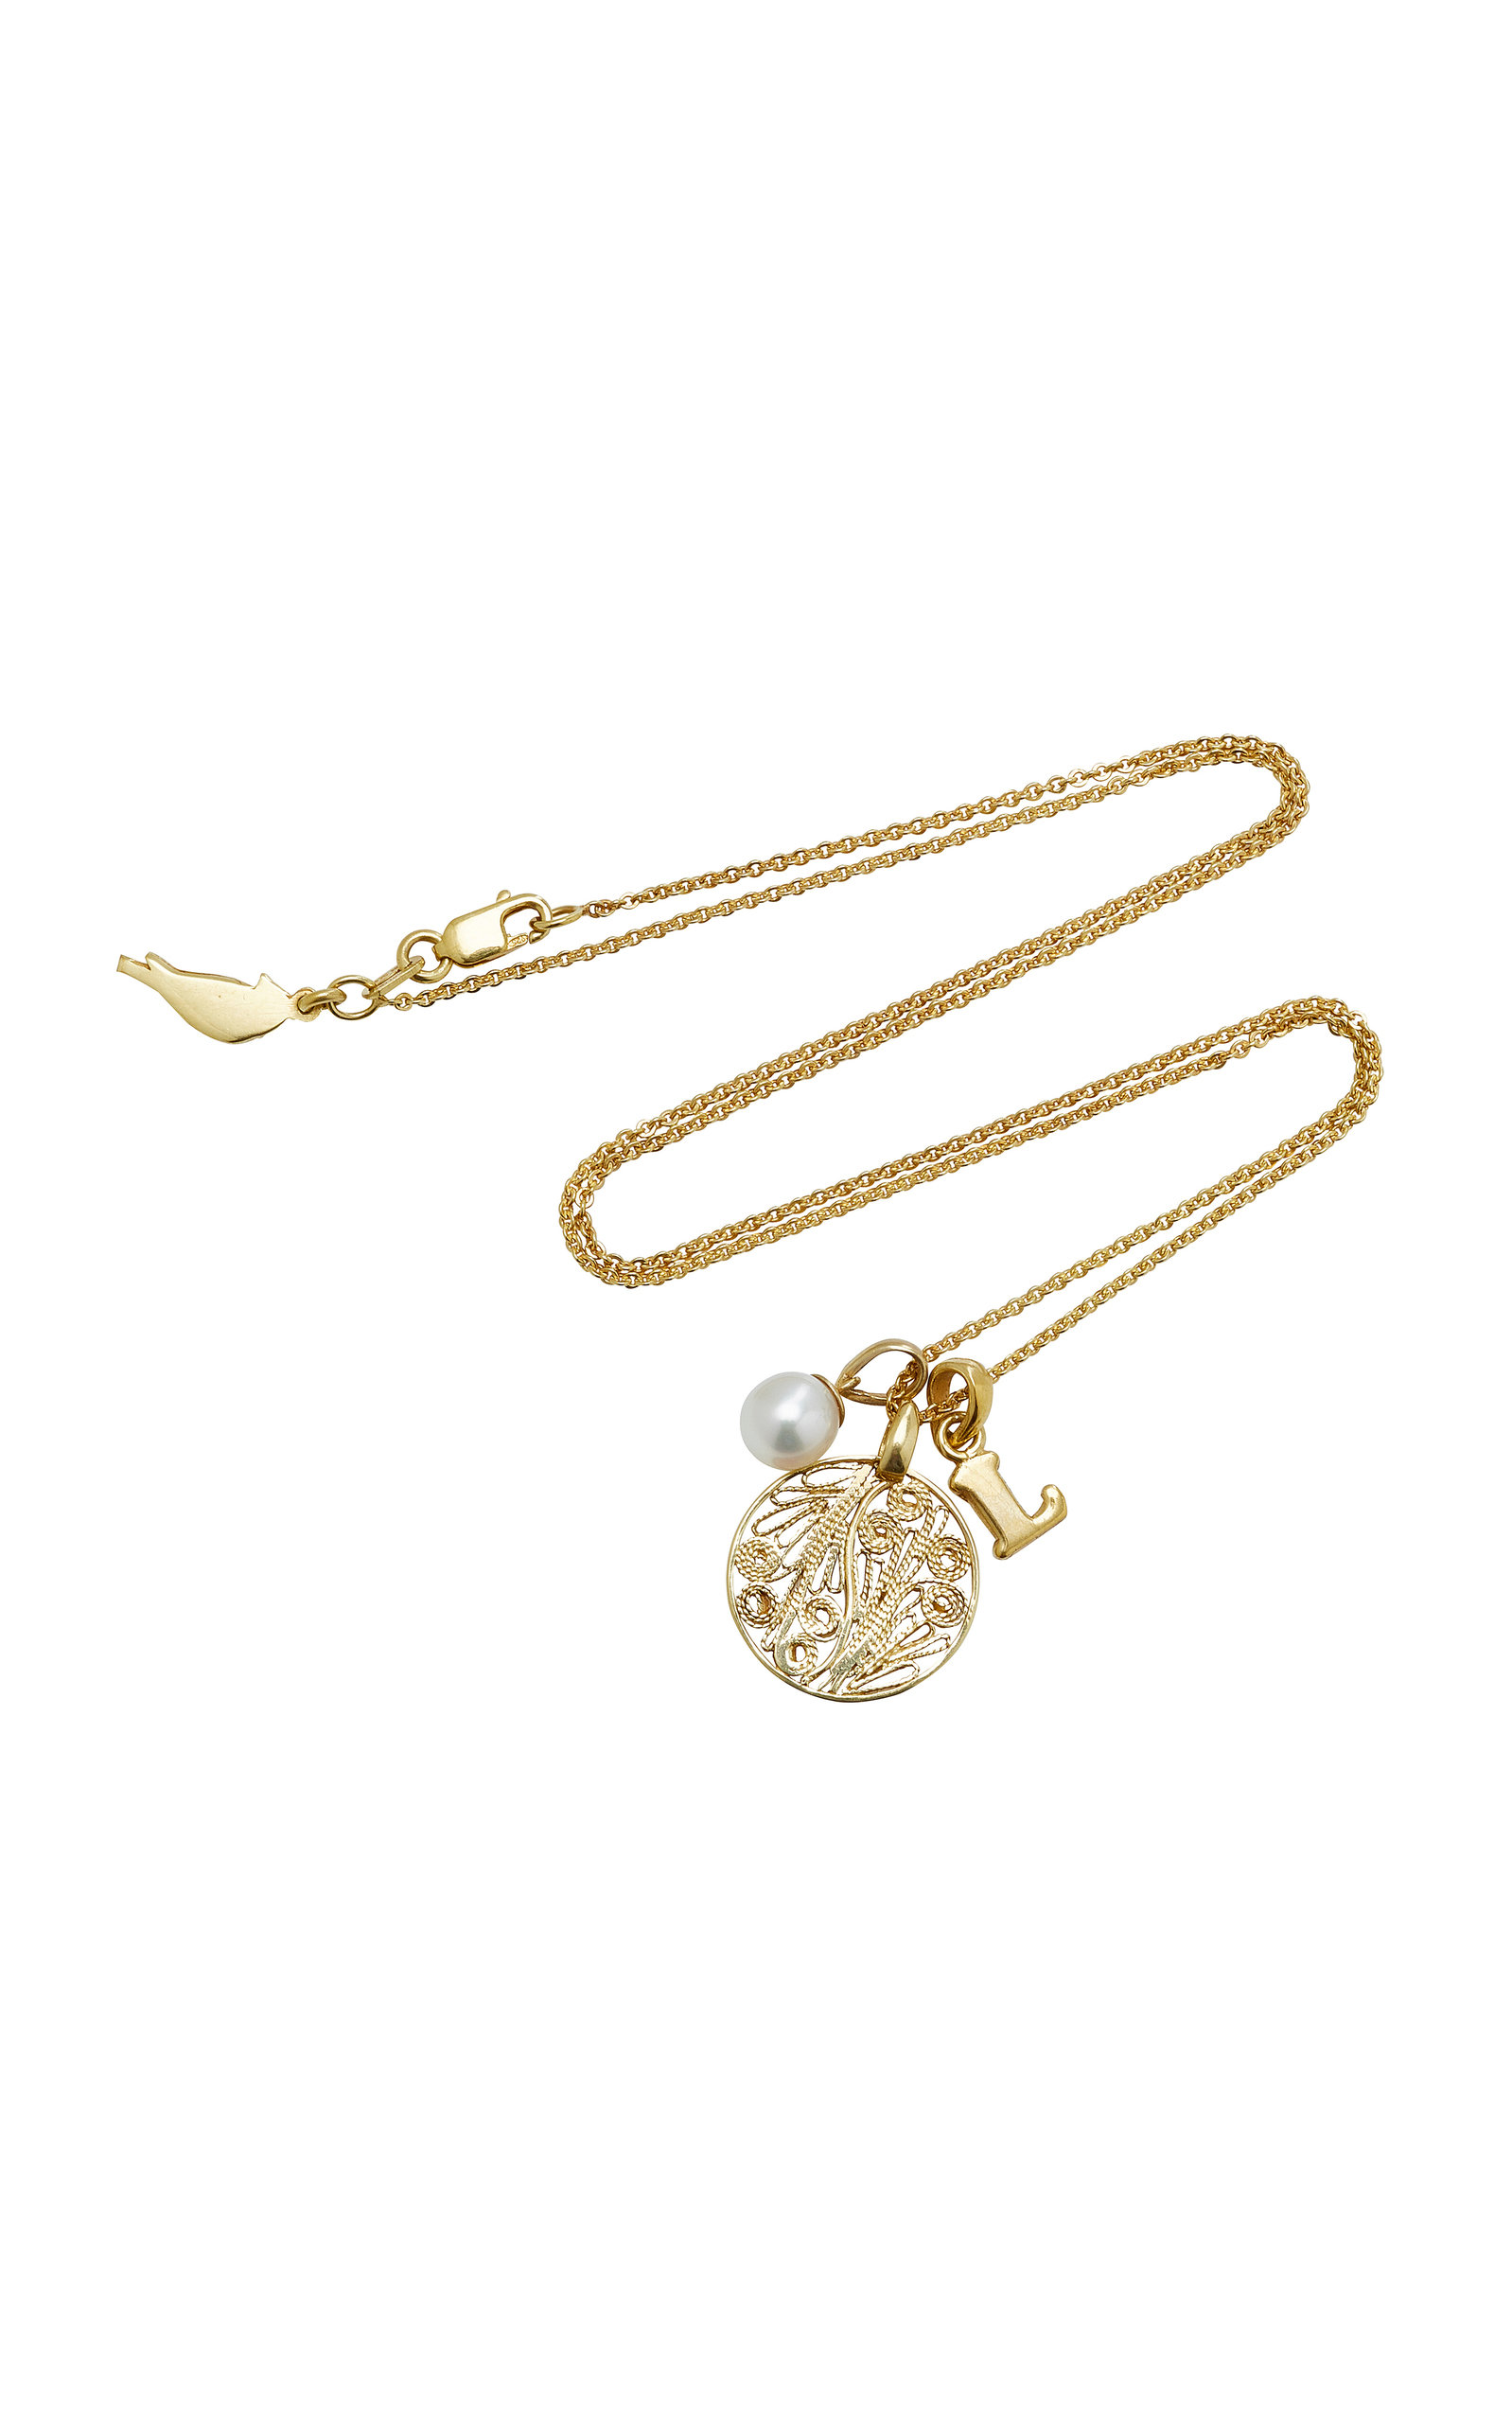 AMANDINA M'ONOGRAM LETTER CHARM WITH FILIGREE MEDALLION AND PEARL NECKLACE